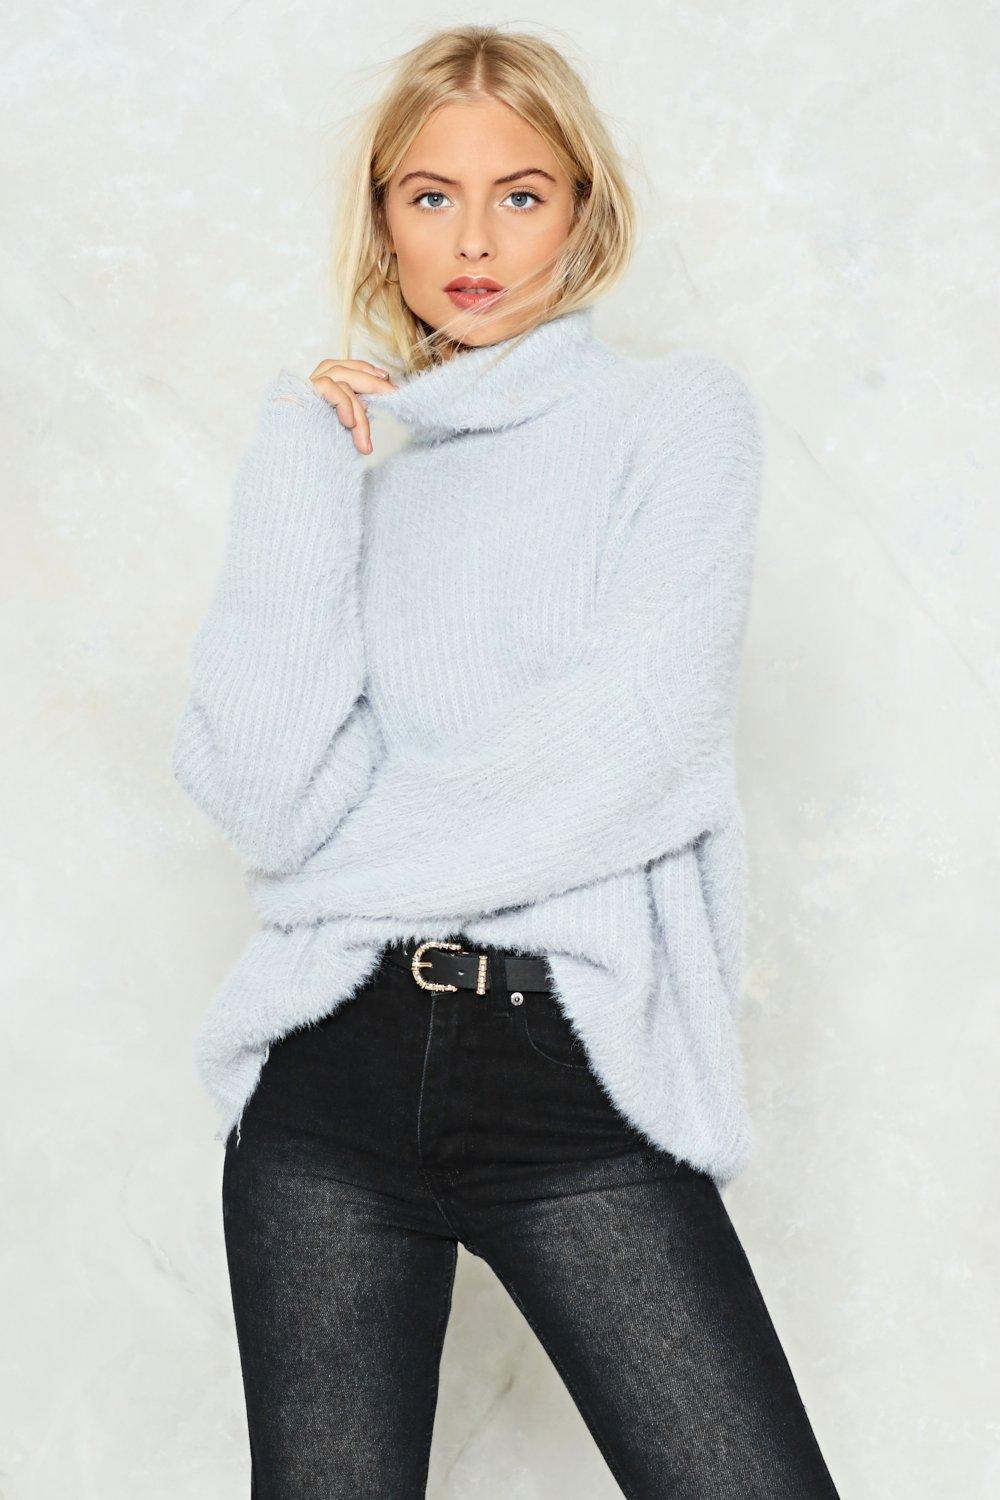 ee0e001c8a6 Womens Grey Knit s a Miracle Turtleneck Sweater